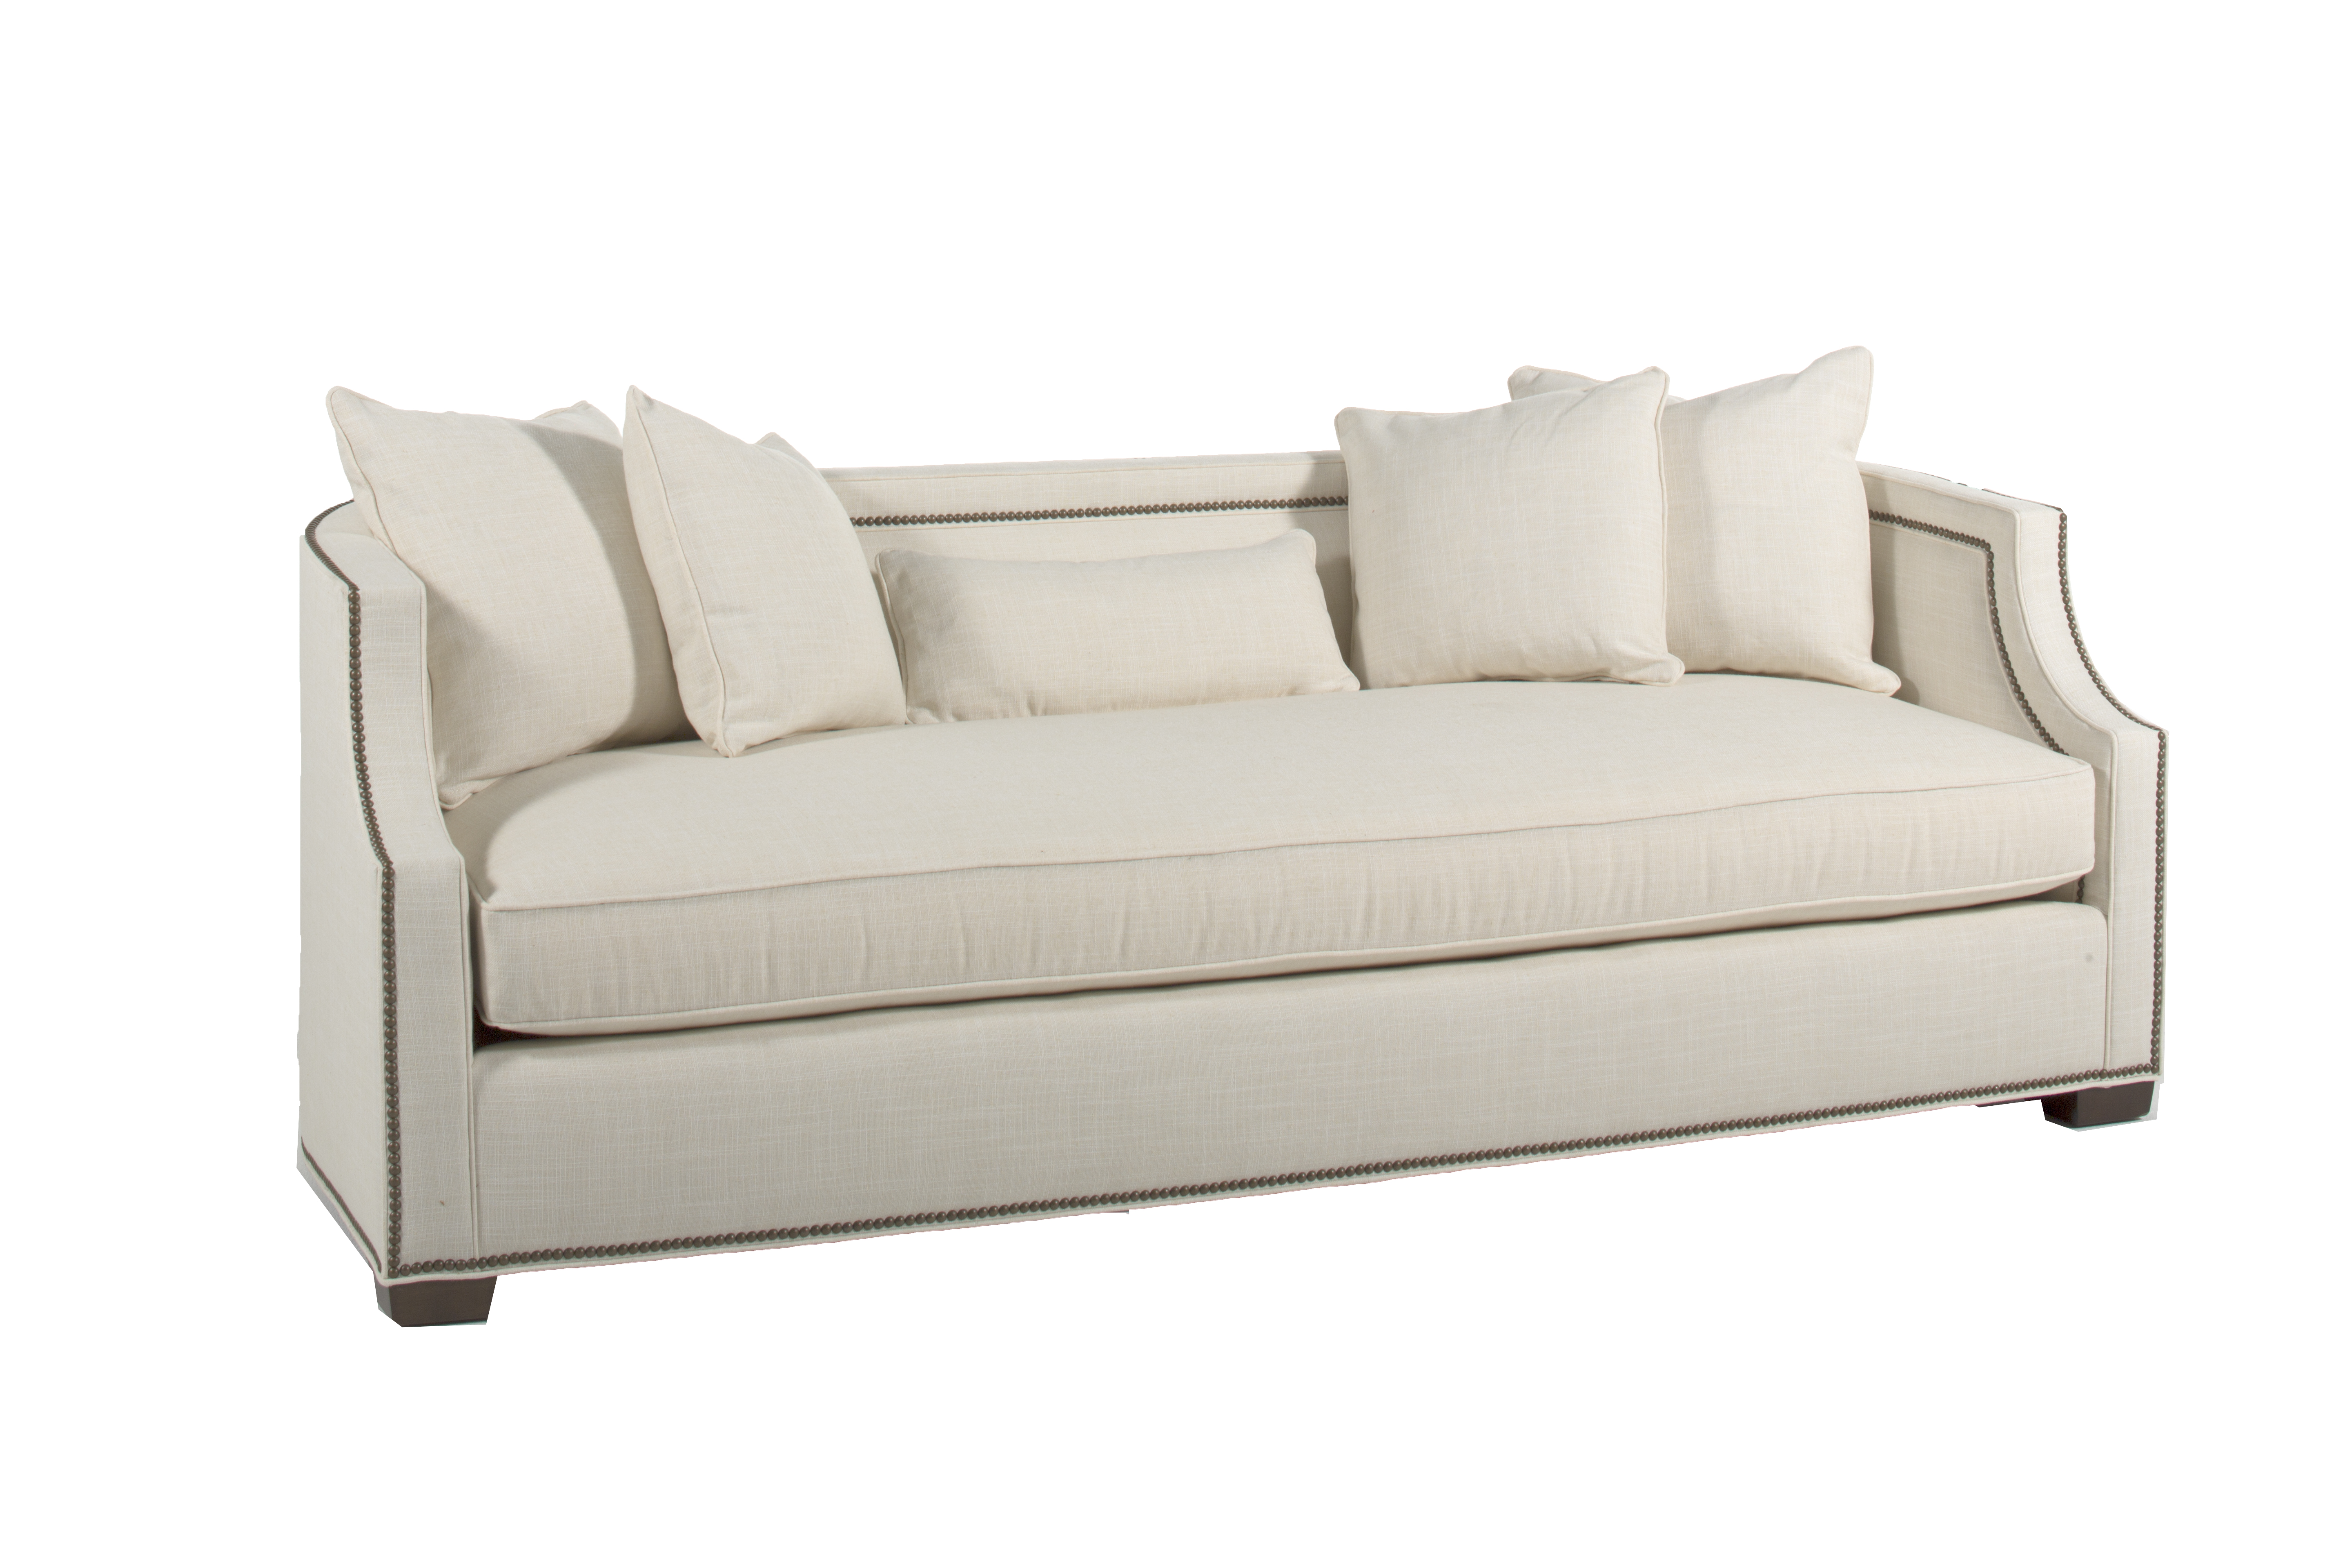 Willow Sofa Willow White Sleeper Couch Crate And Barrel